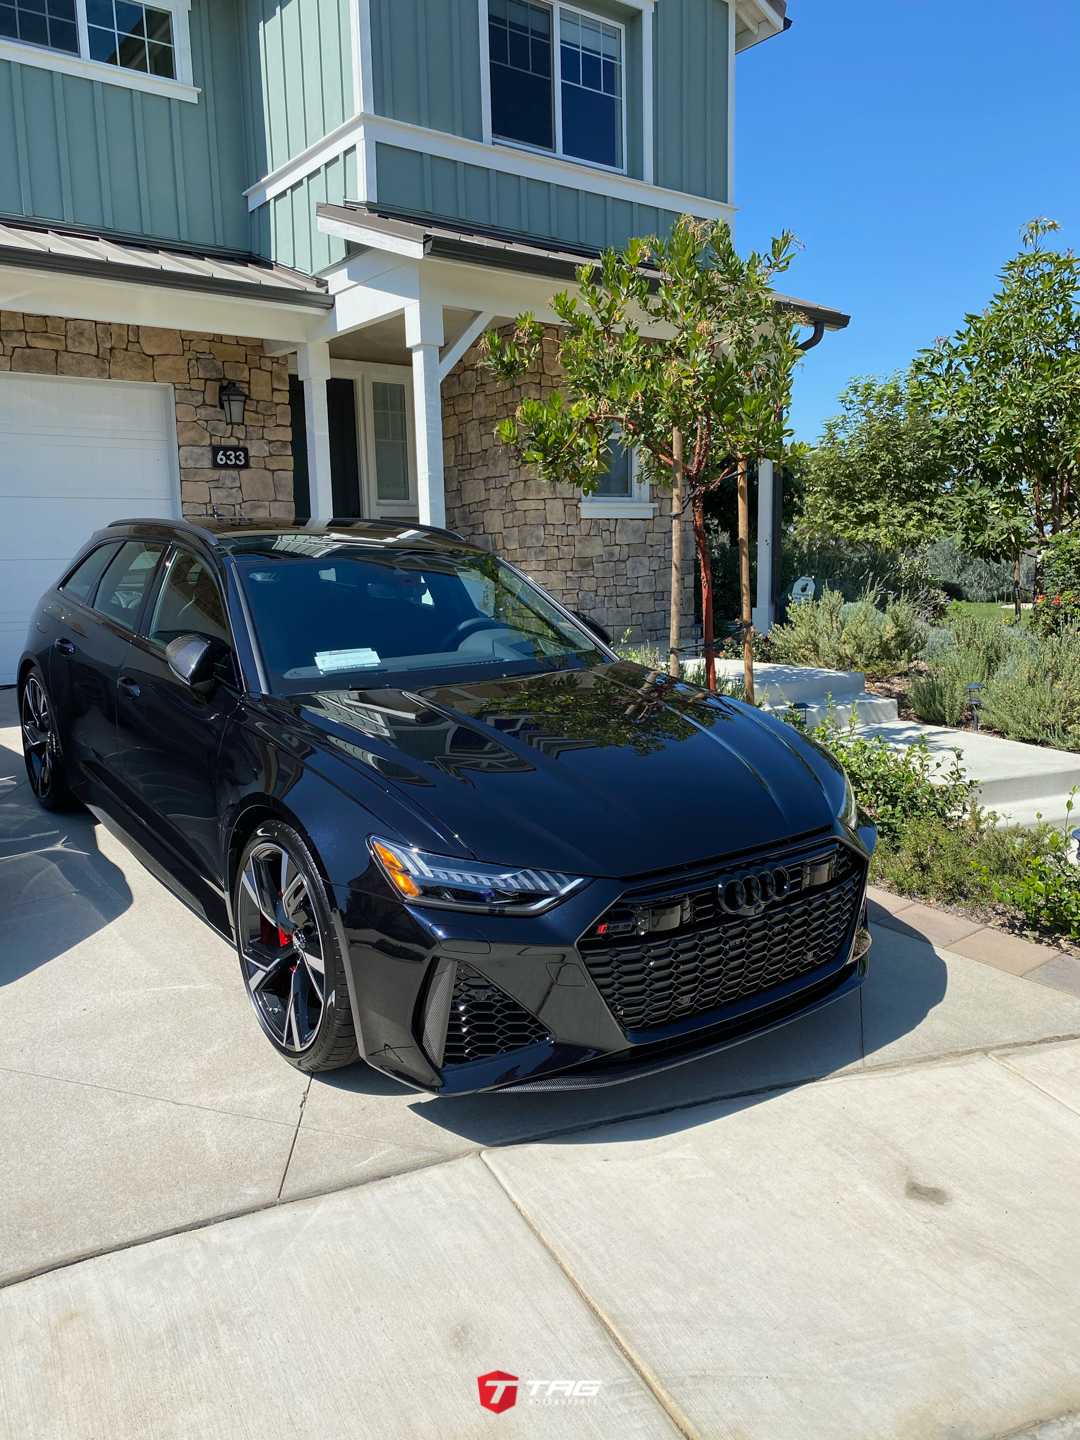 NEW PROJECT ALERT: WELCOME HOME TAG'S PROJECT RS6 - 1 of 2 ...